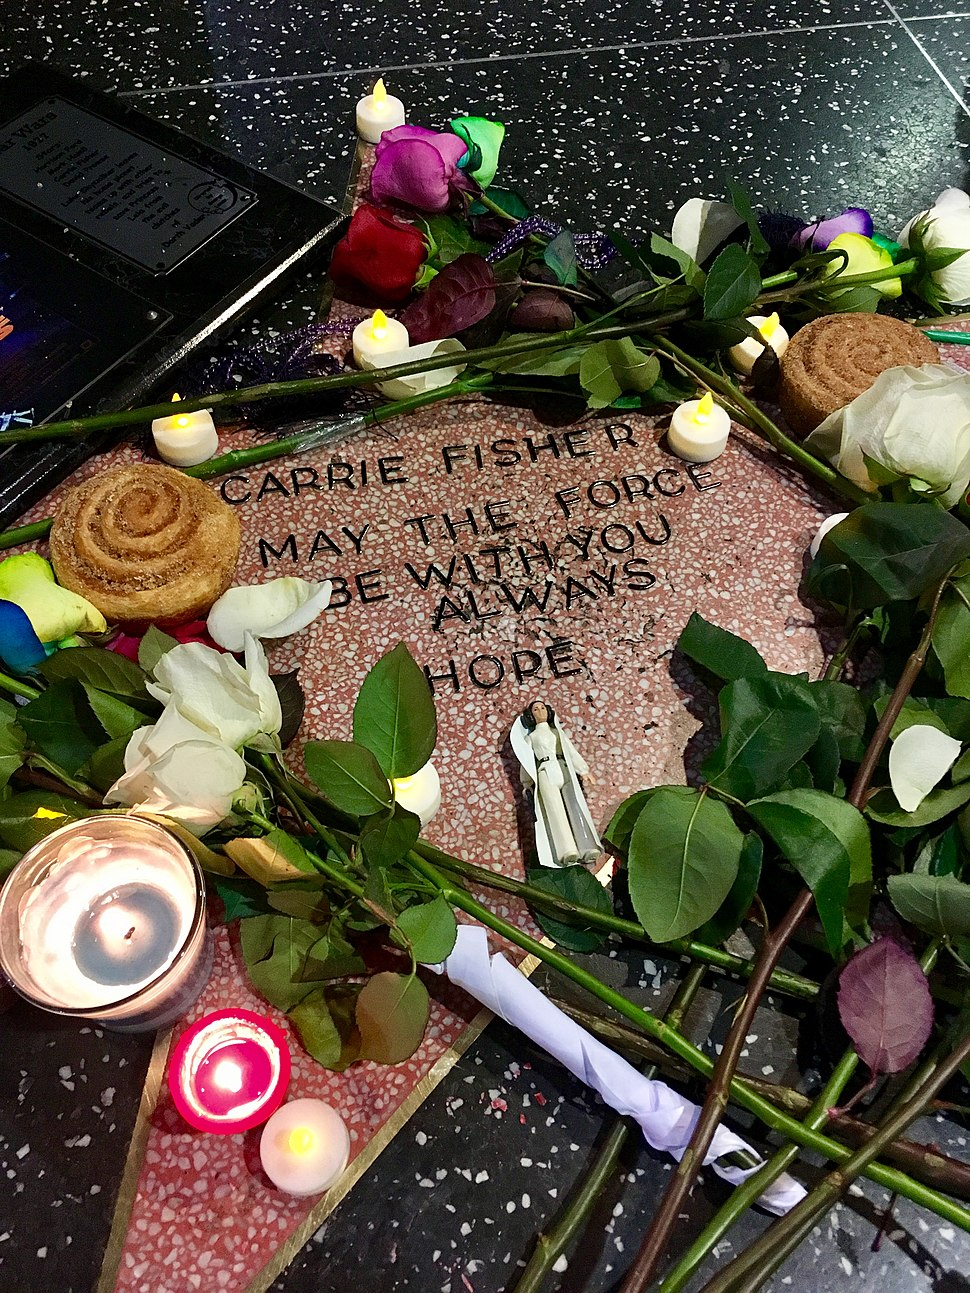 Carrie Fisher memorial star